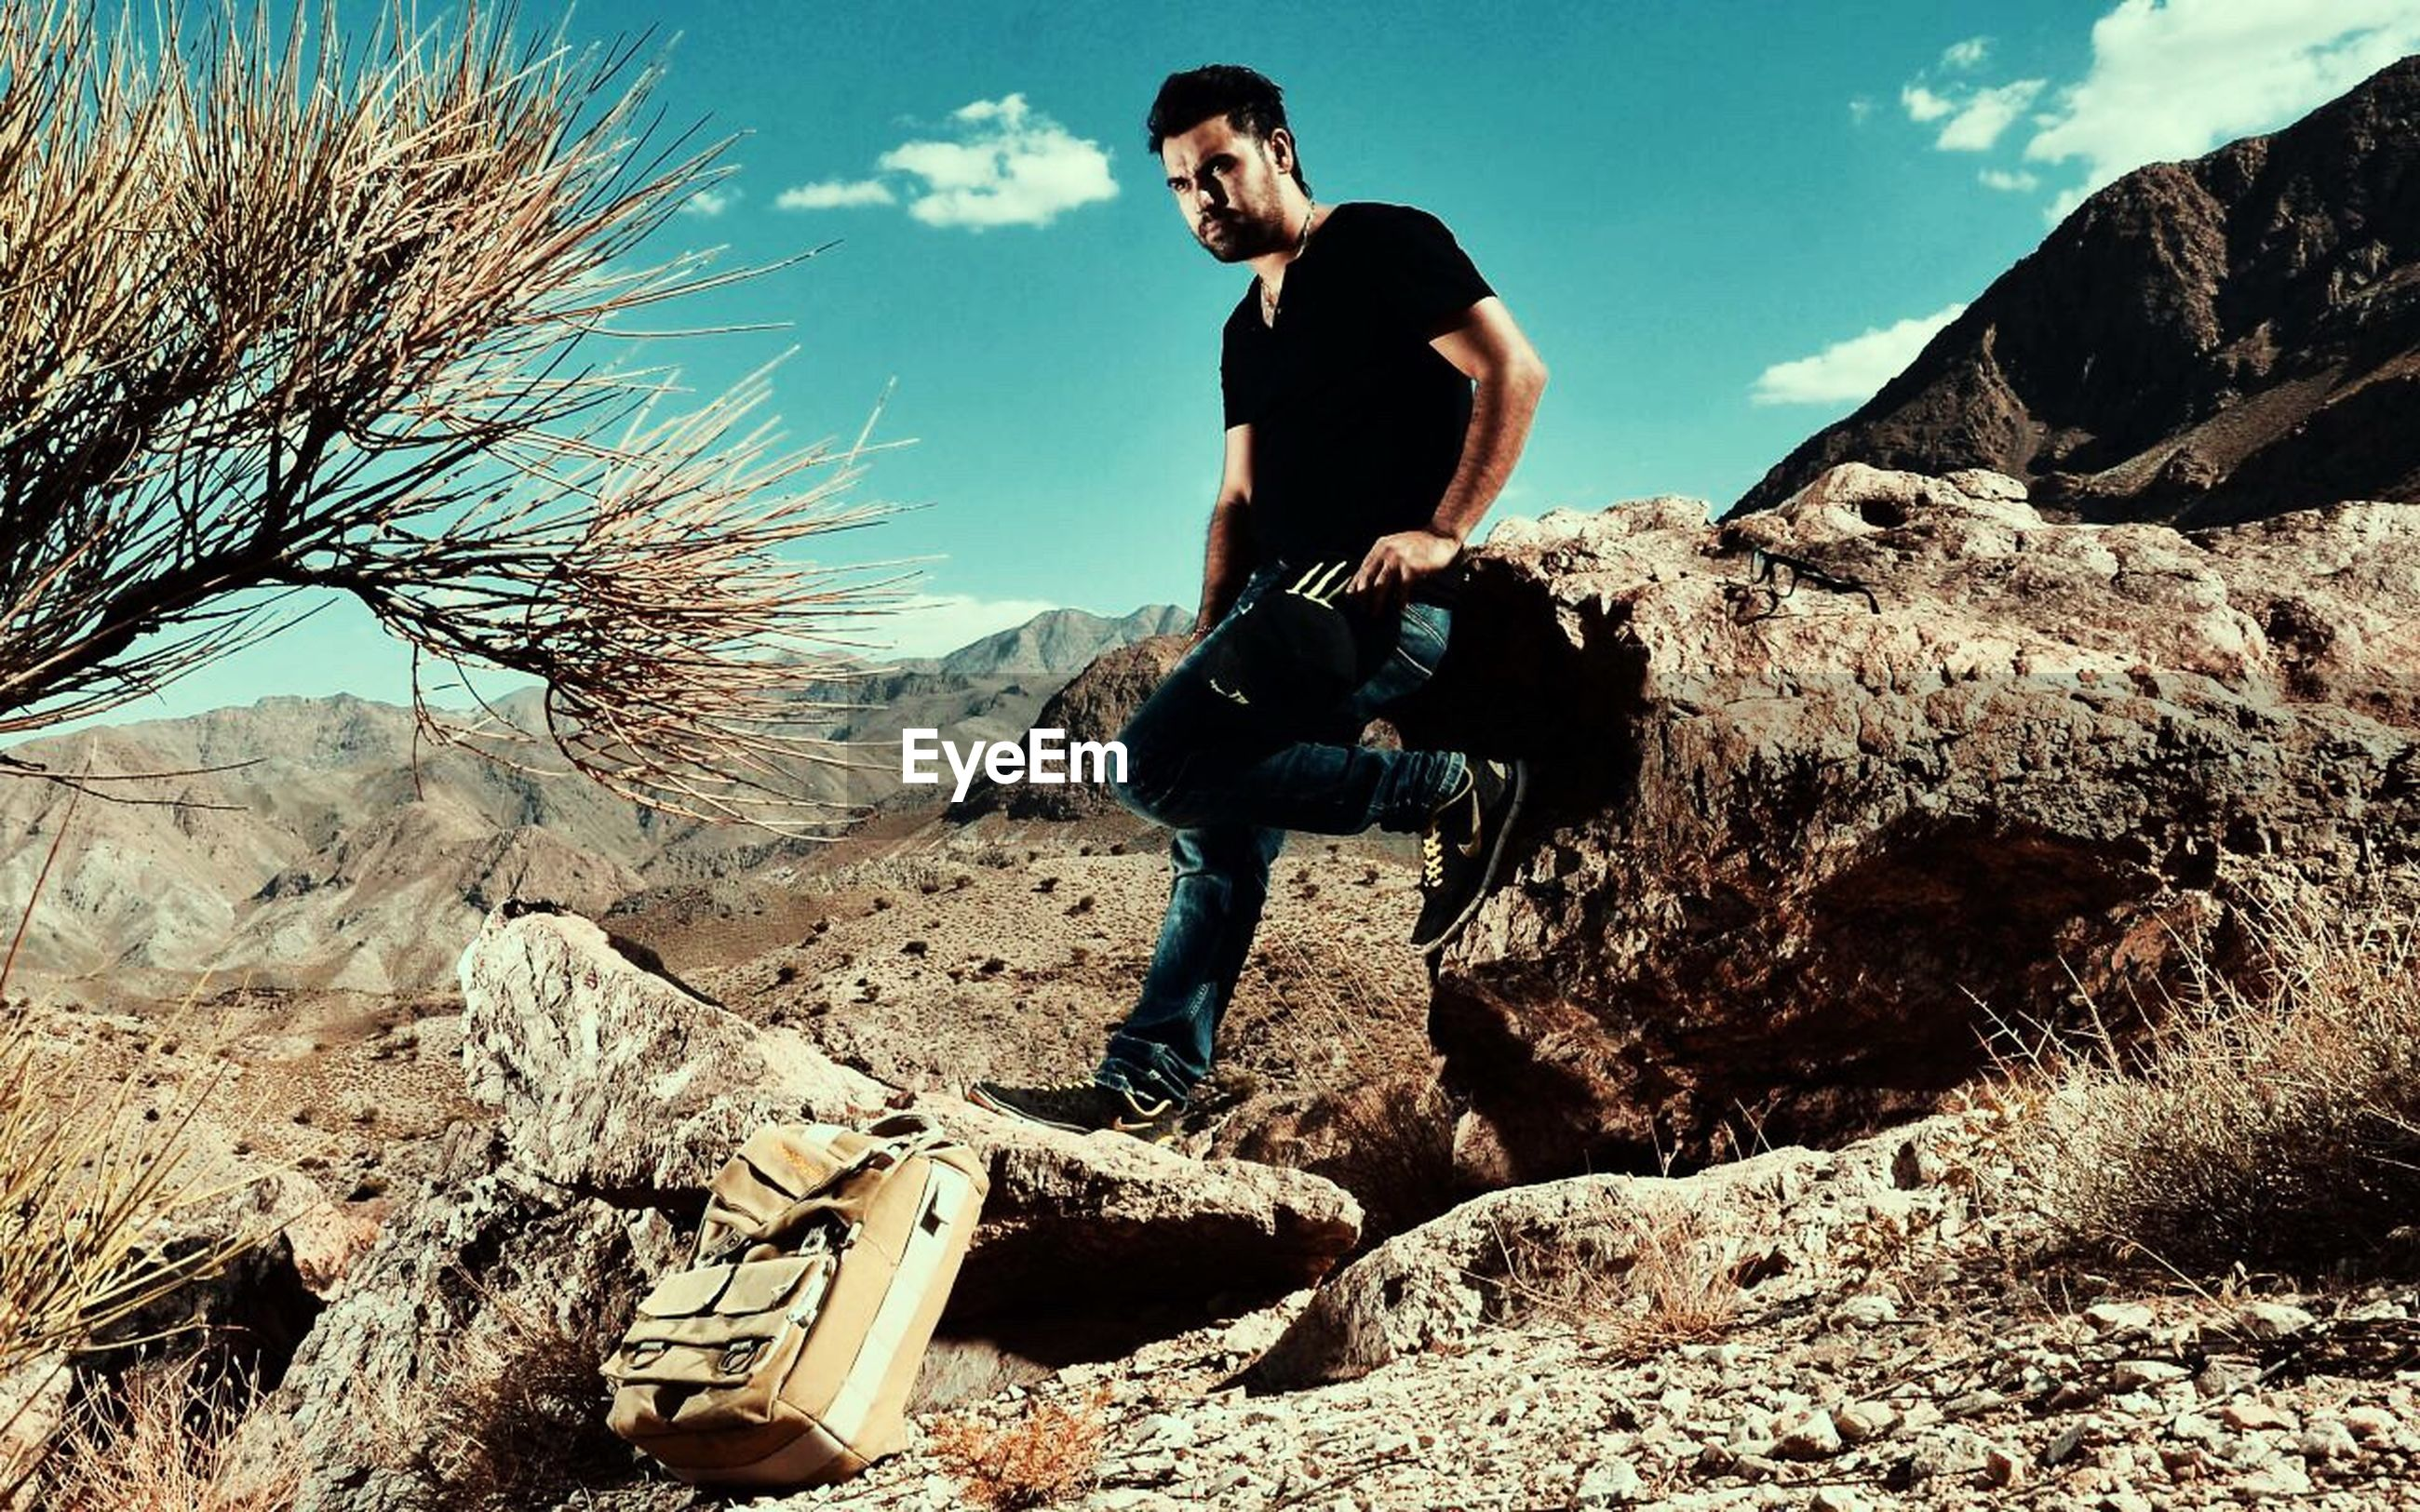 rock - object, one person, real people, full length, adventure, nature, sky, day, young men, young adult, outdoors, lifestyles, men, mountain, beauty in nature, tree, extreme sports, one man only, people